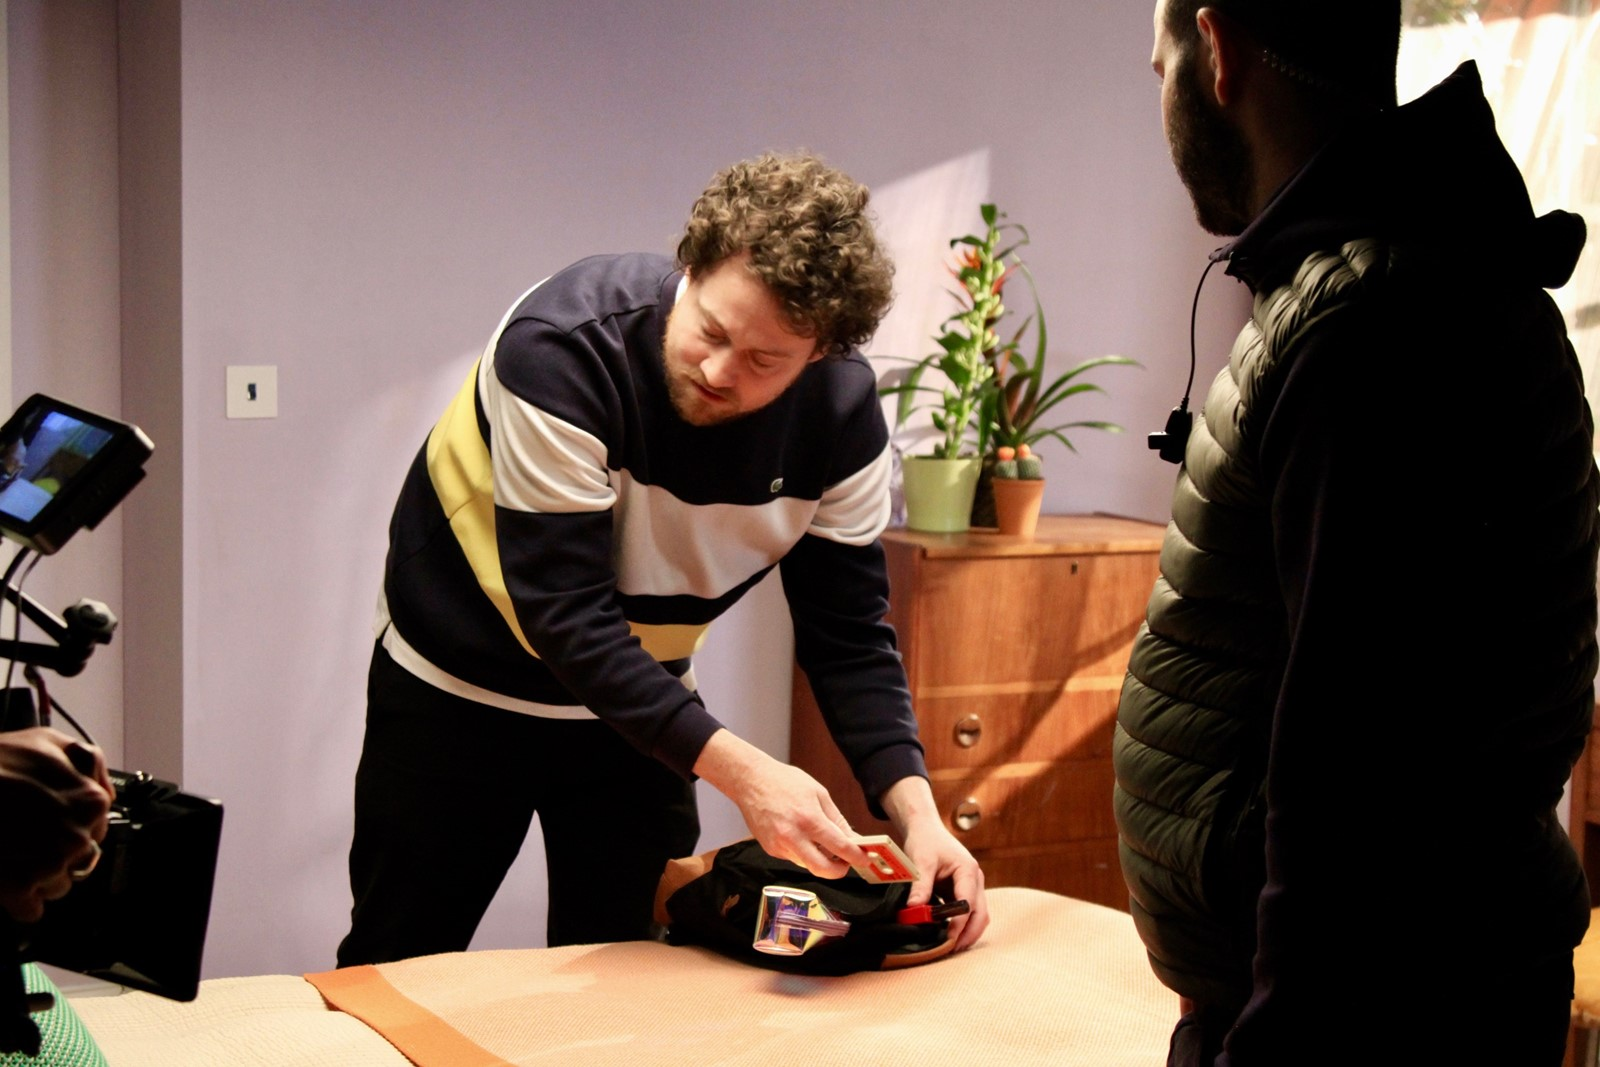 Behind the scenes of Metronomy's 'Lately' video